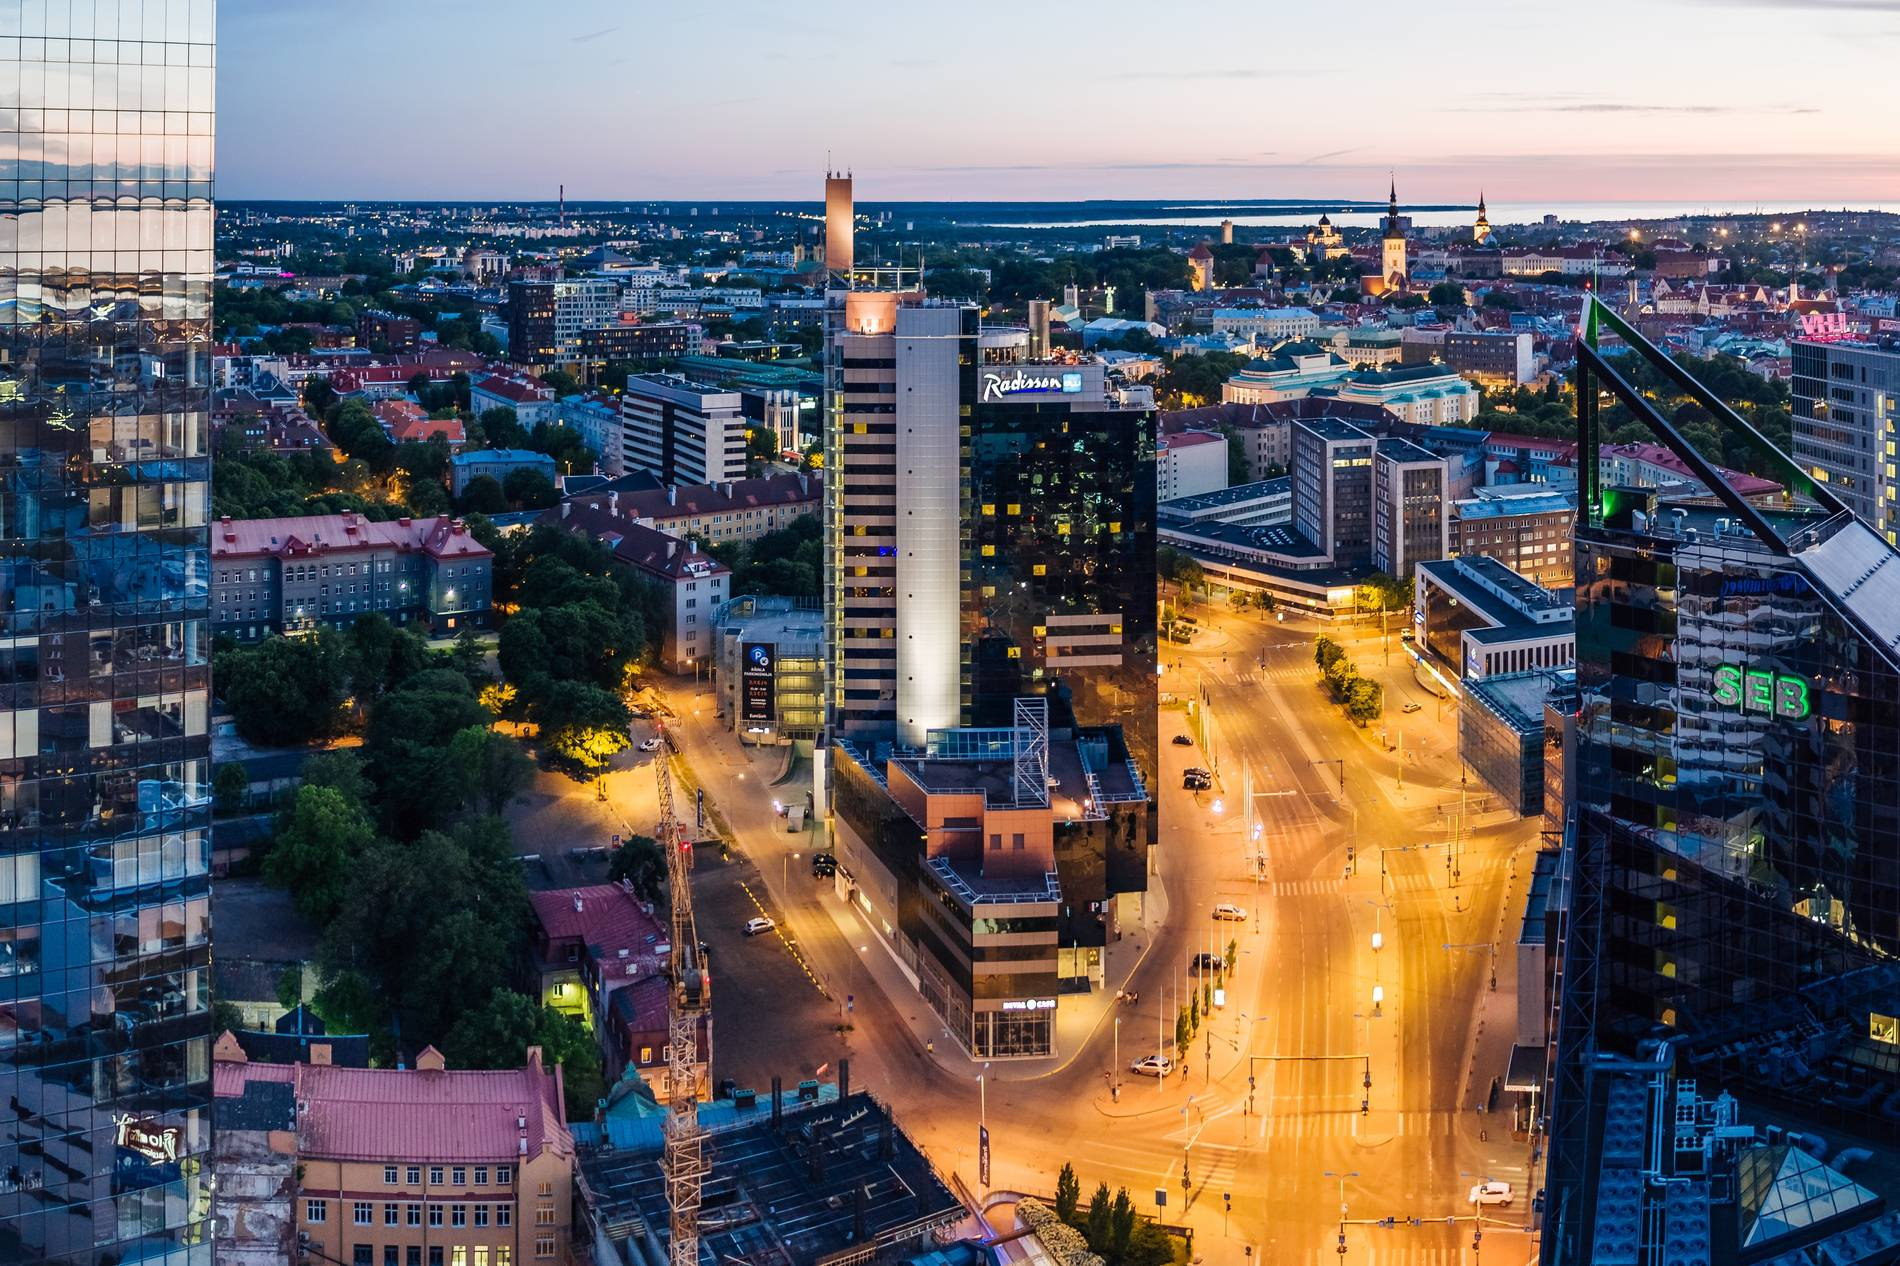 View of Radisson Blu Sky hotel in Tallinn city centre Photo by: Kaupo Kalda